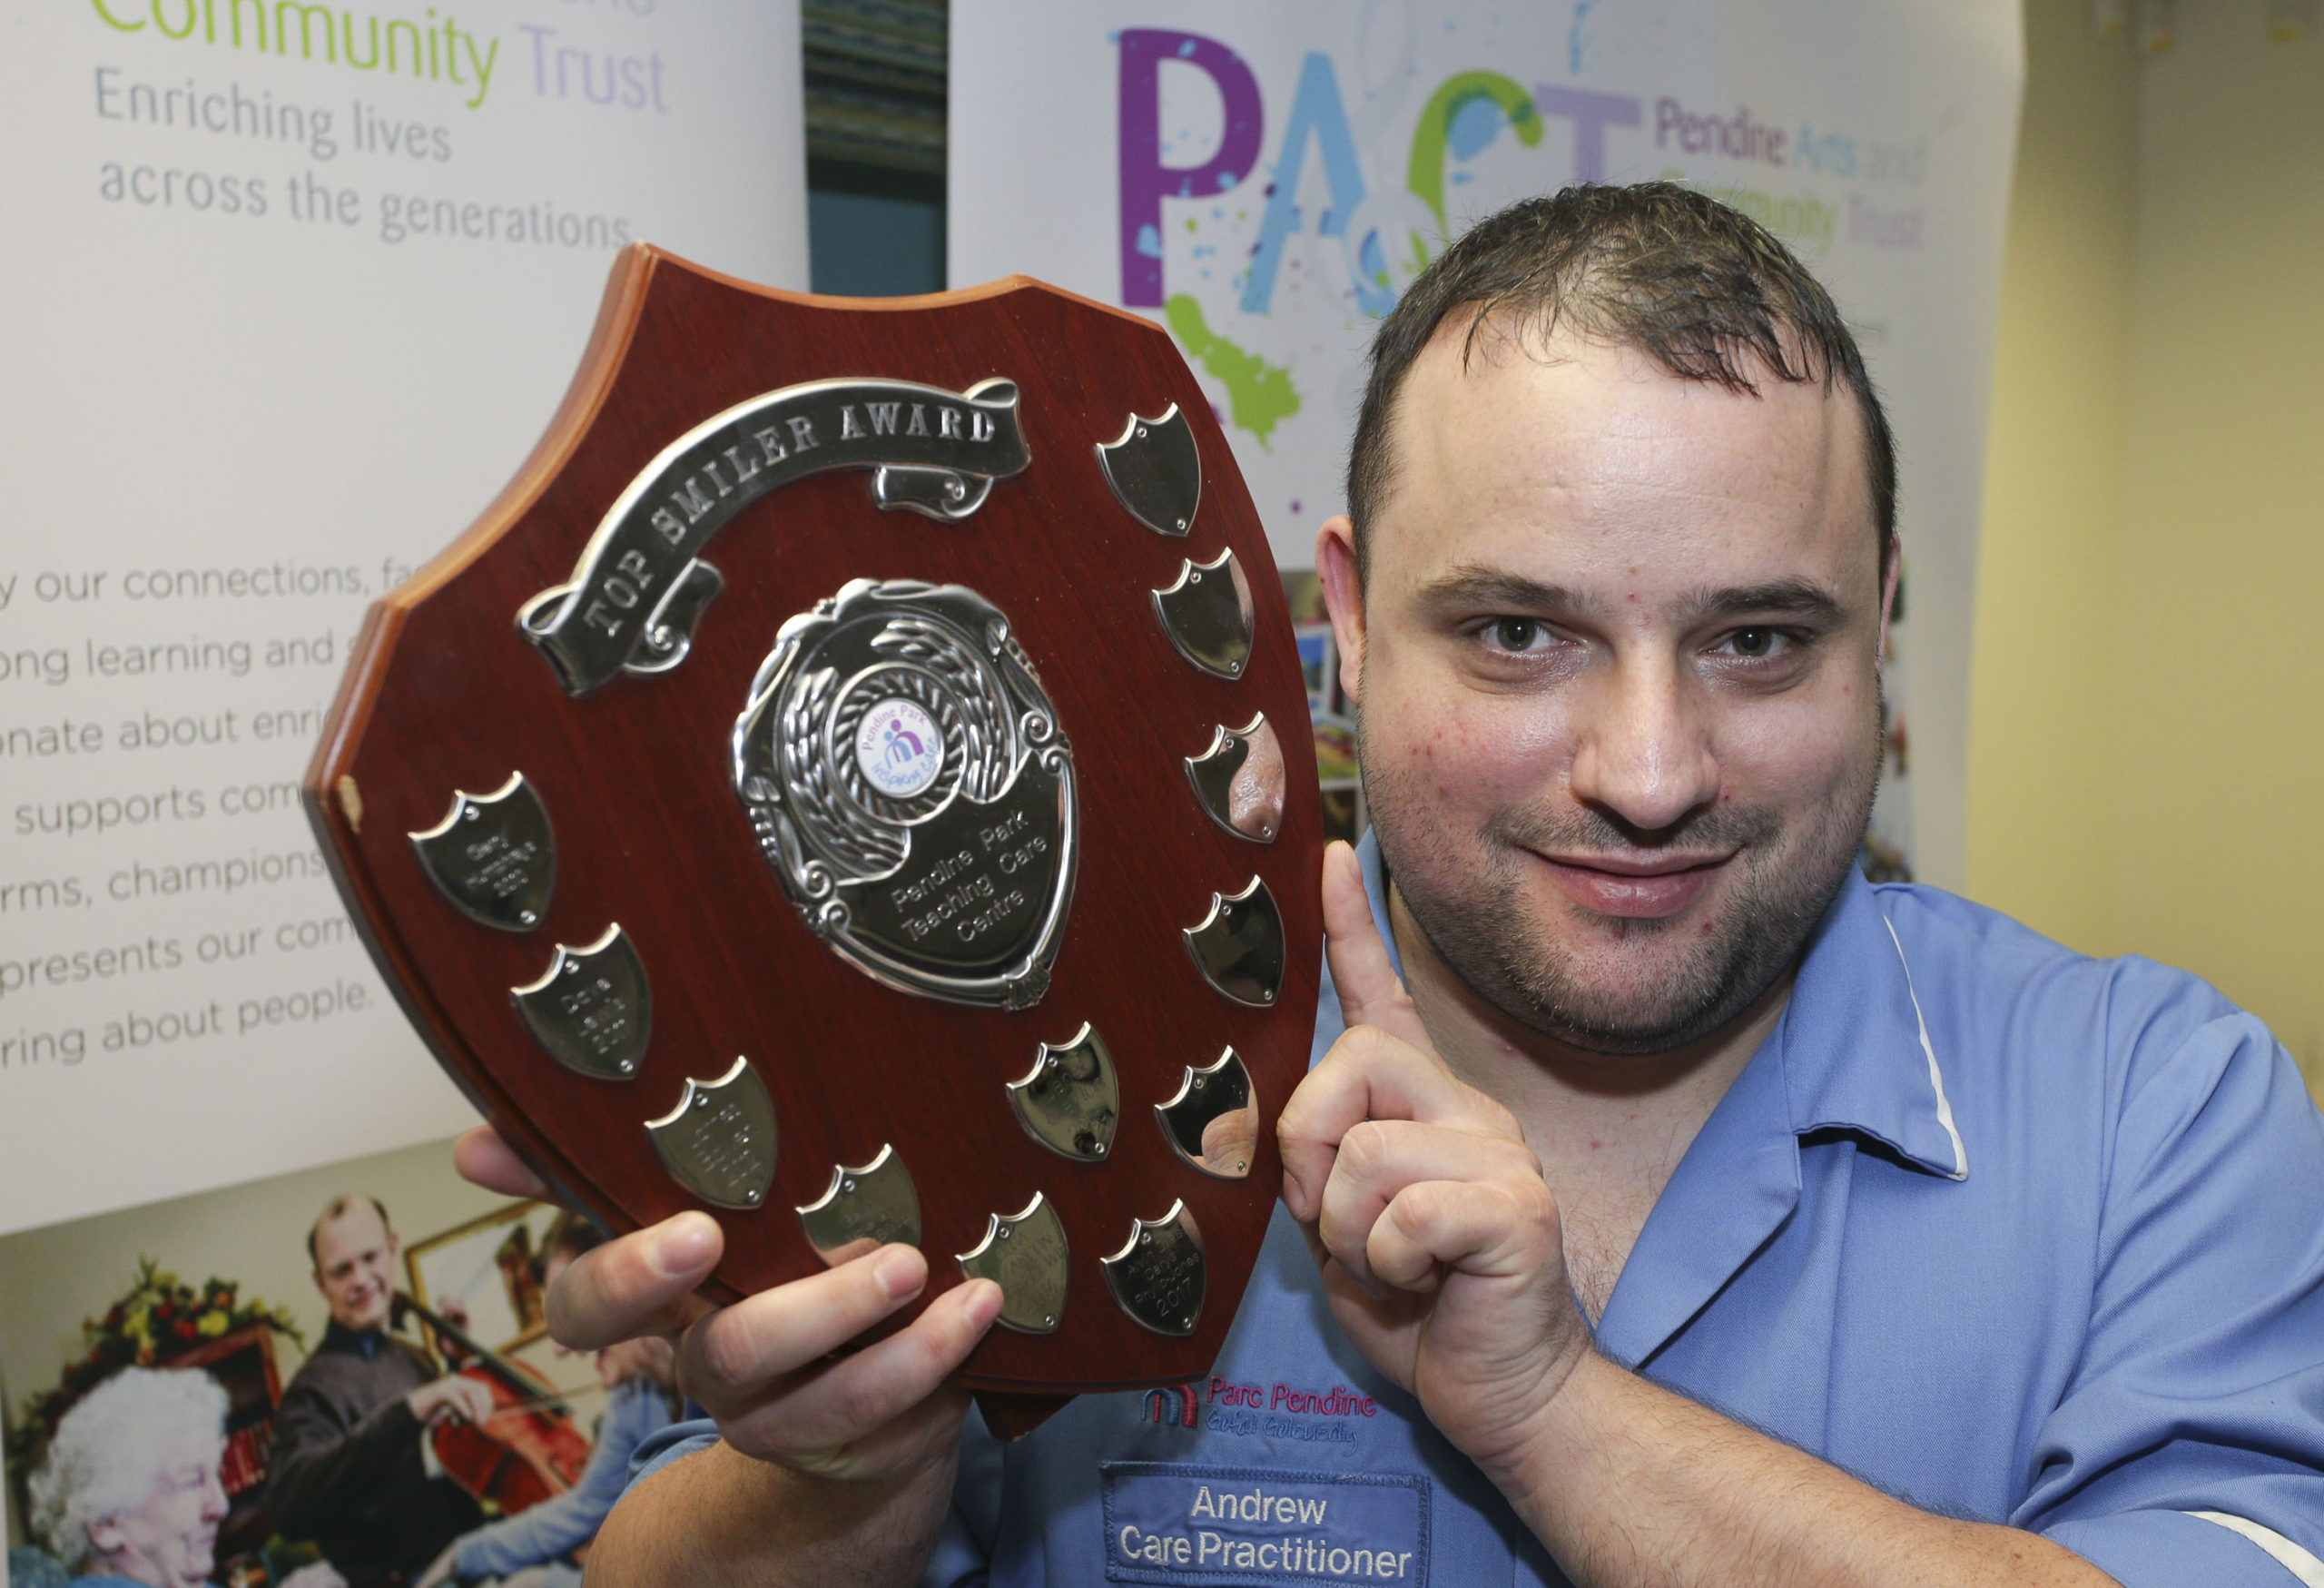 Gwynedd care worker Andrew honoured for going the extra smile